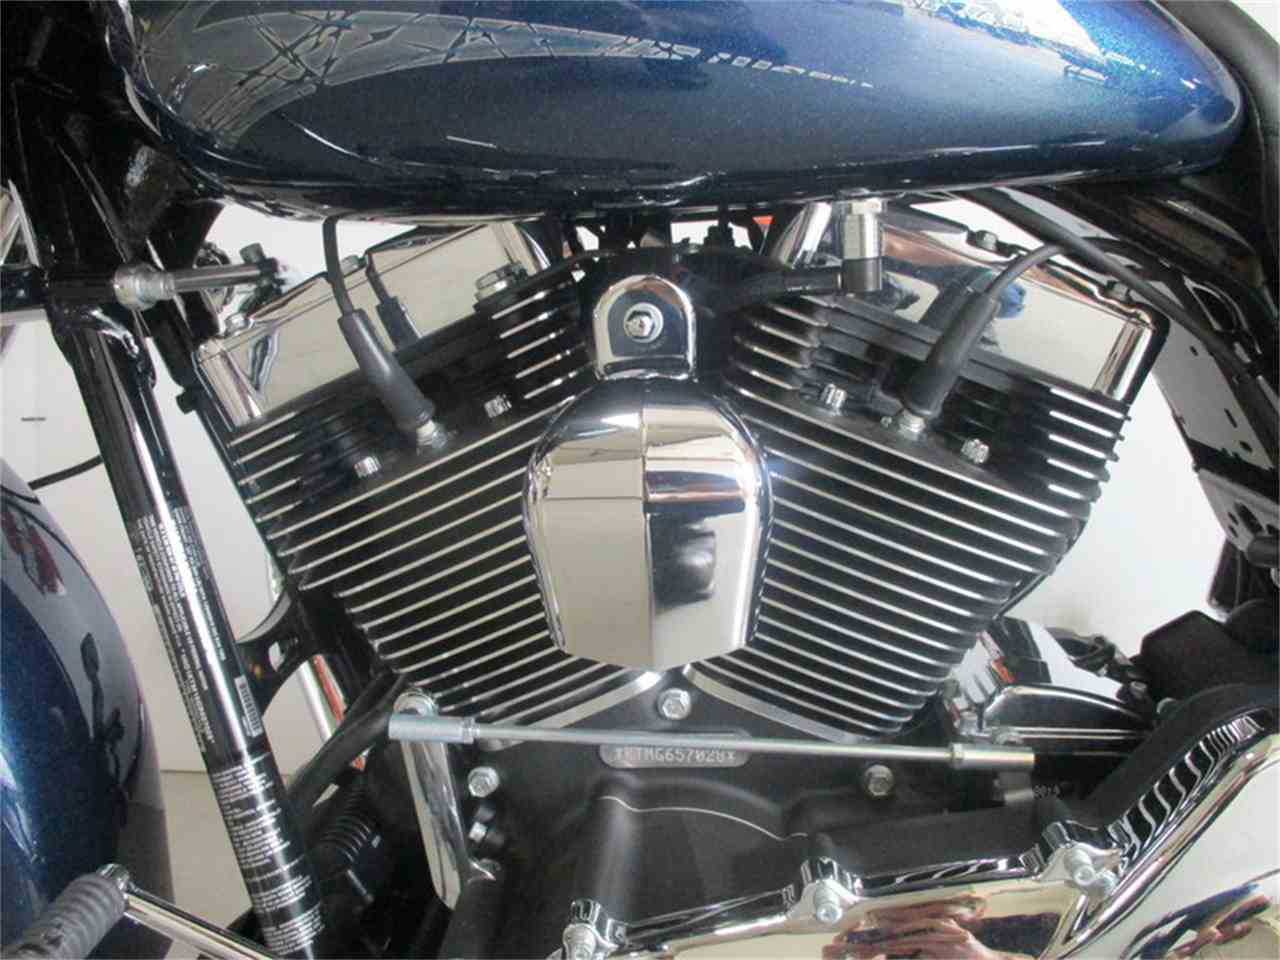 Large Picture of 2016 Harley-Davidson® FLTRXS - Road Glide® Special located in Thiensville Wisconsin Offered by Suburban Motors, Inc. - M9FJ